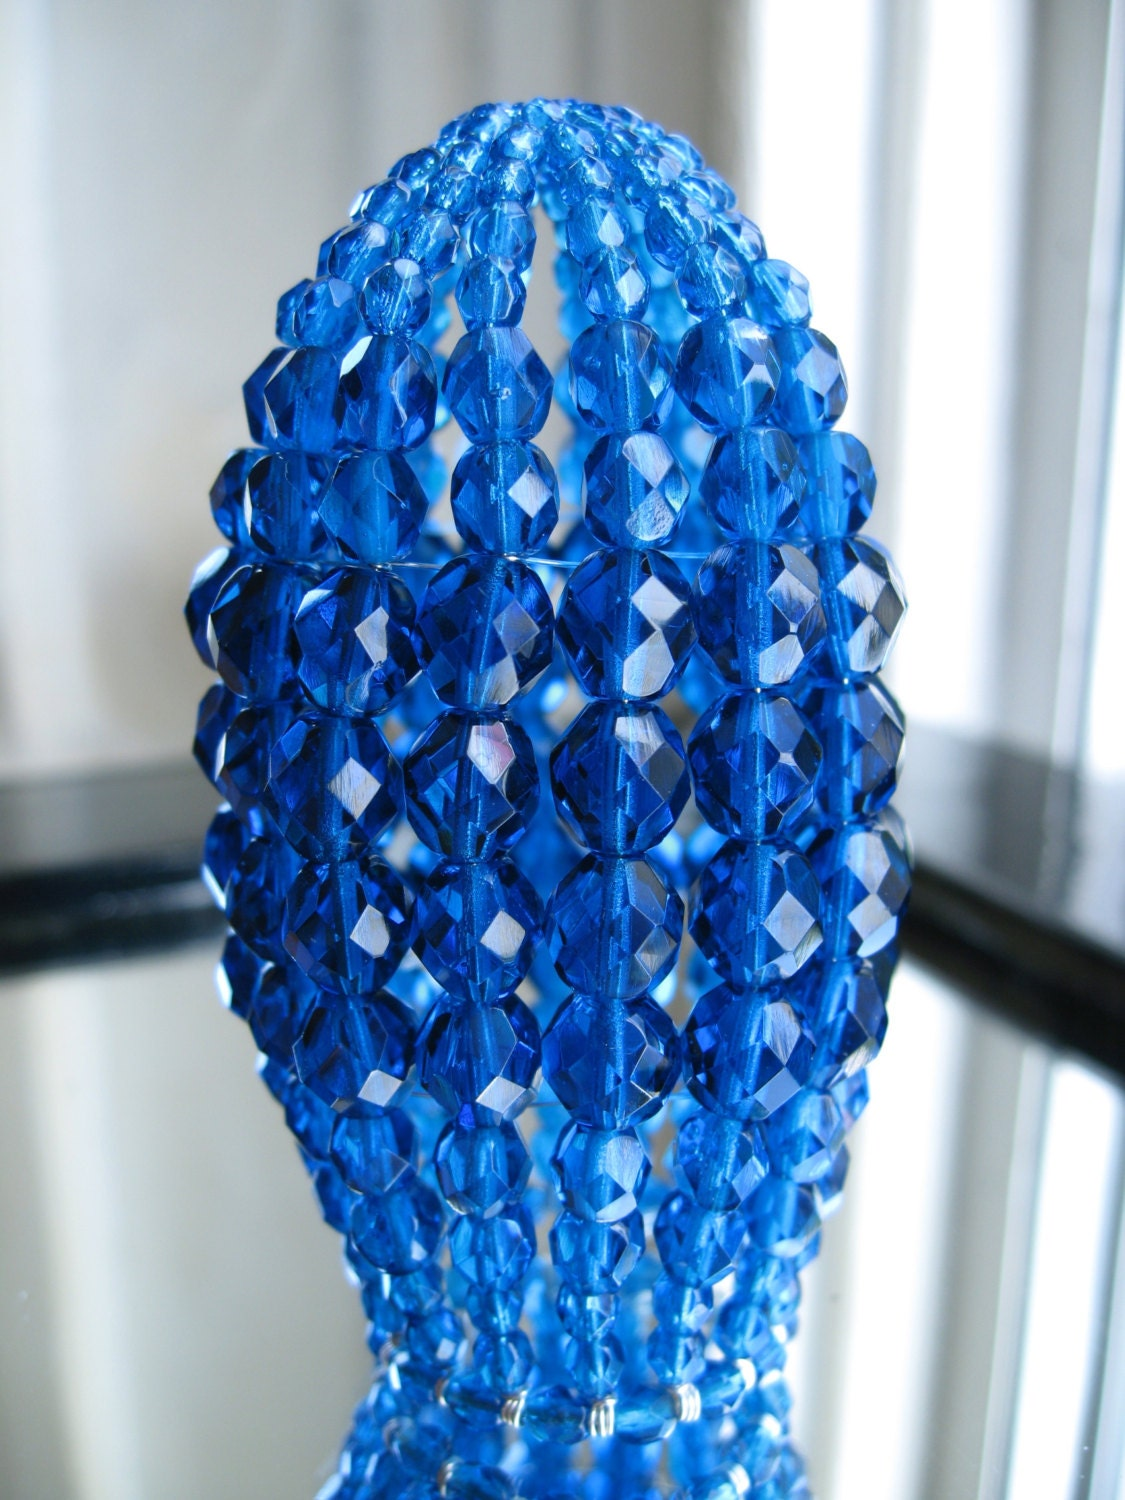 Small Beaded Light Bulb Cover Chandelier Shades Capri Blue